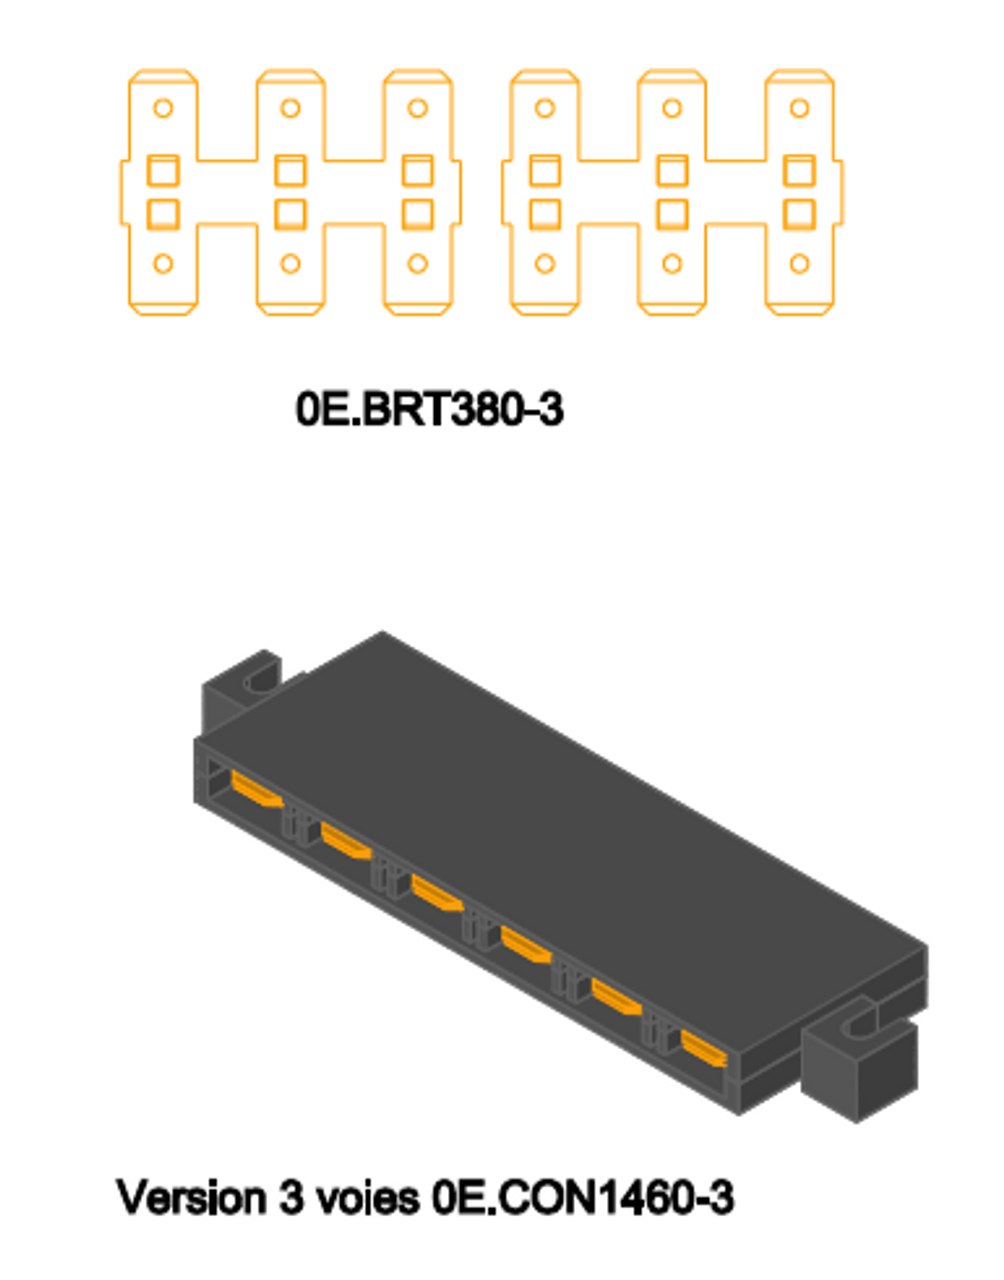 0E1460-3  Three-to-three strip, for making 3-up  (x2) common connections